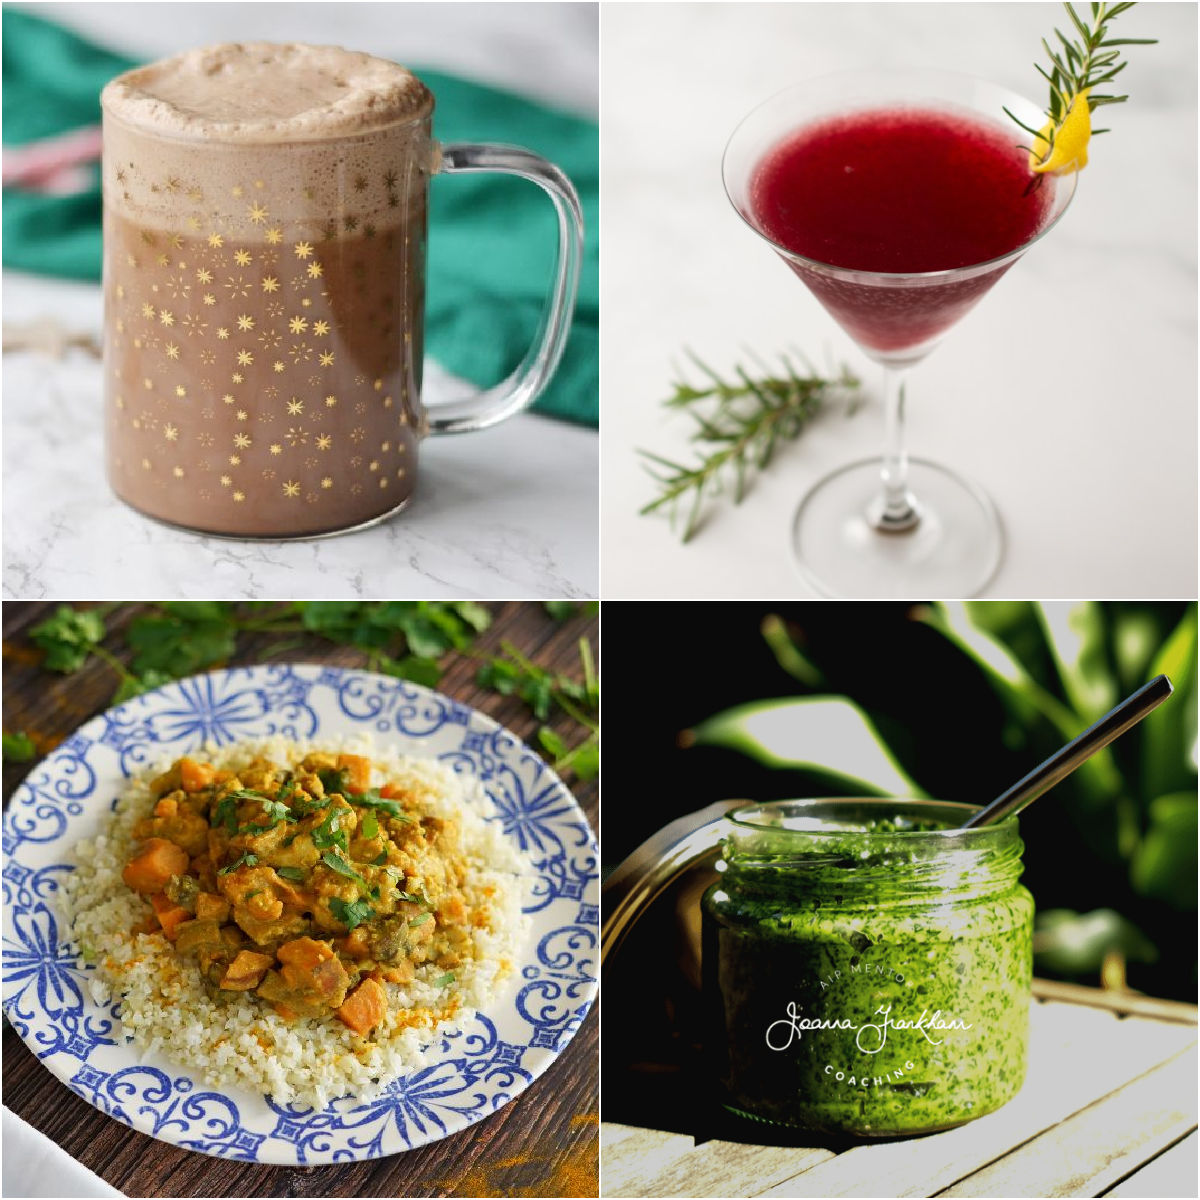 "Paleo AIP Recipe Roundtable #348 | Phoenix Helix - *Featured Recipes: Peppermint Hot ""Chocolate"", Moroccan Chicken Stew, Pomegranate Rosemary Spritzer Mocktail, and Kale Sauce"